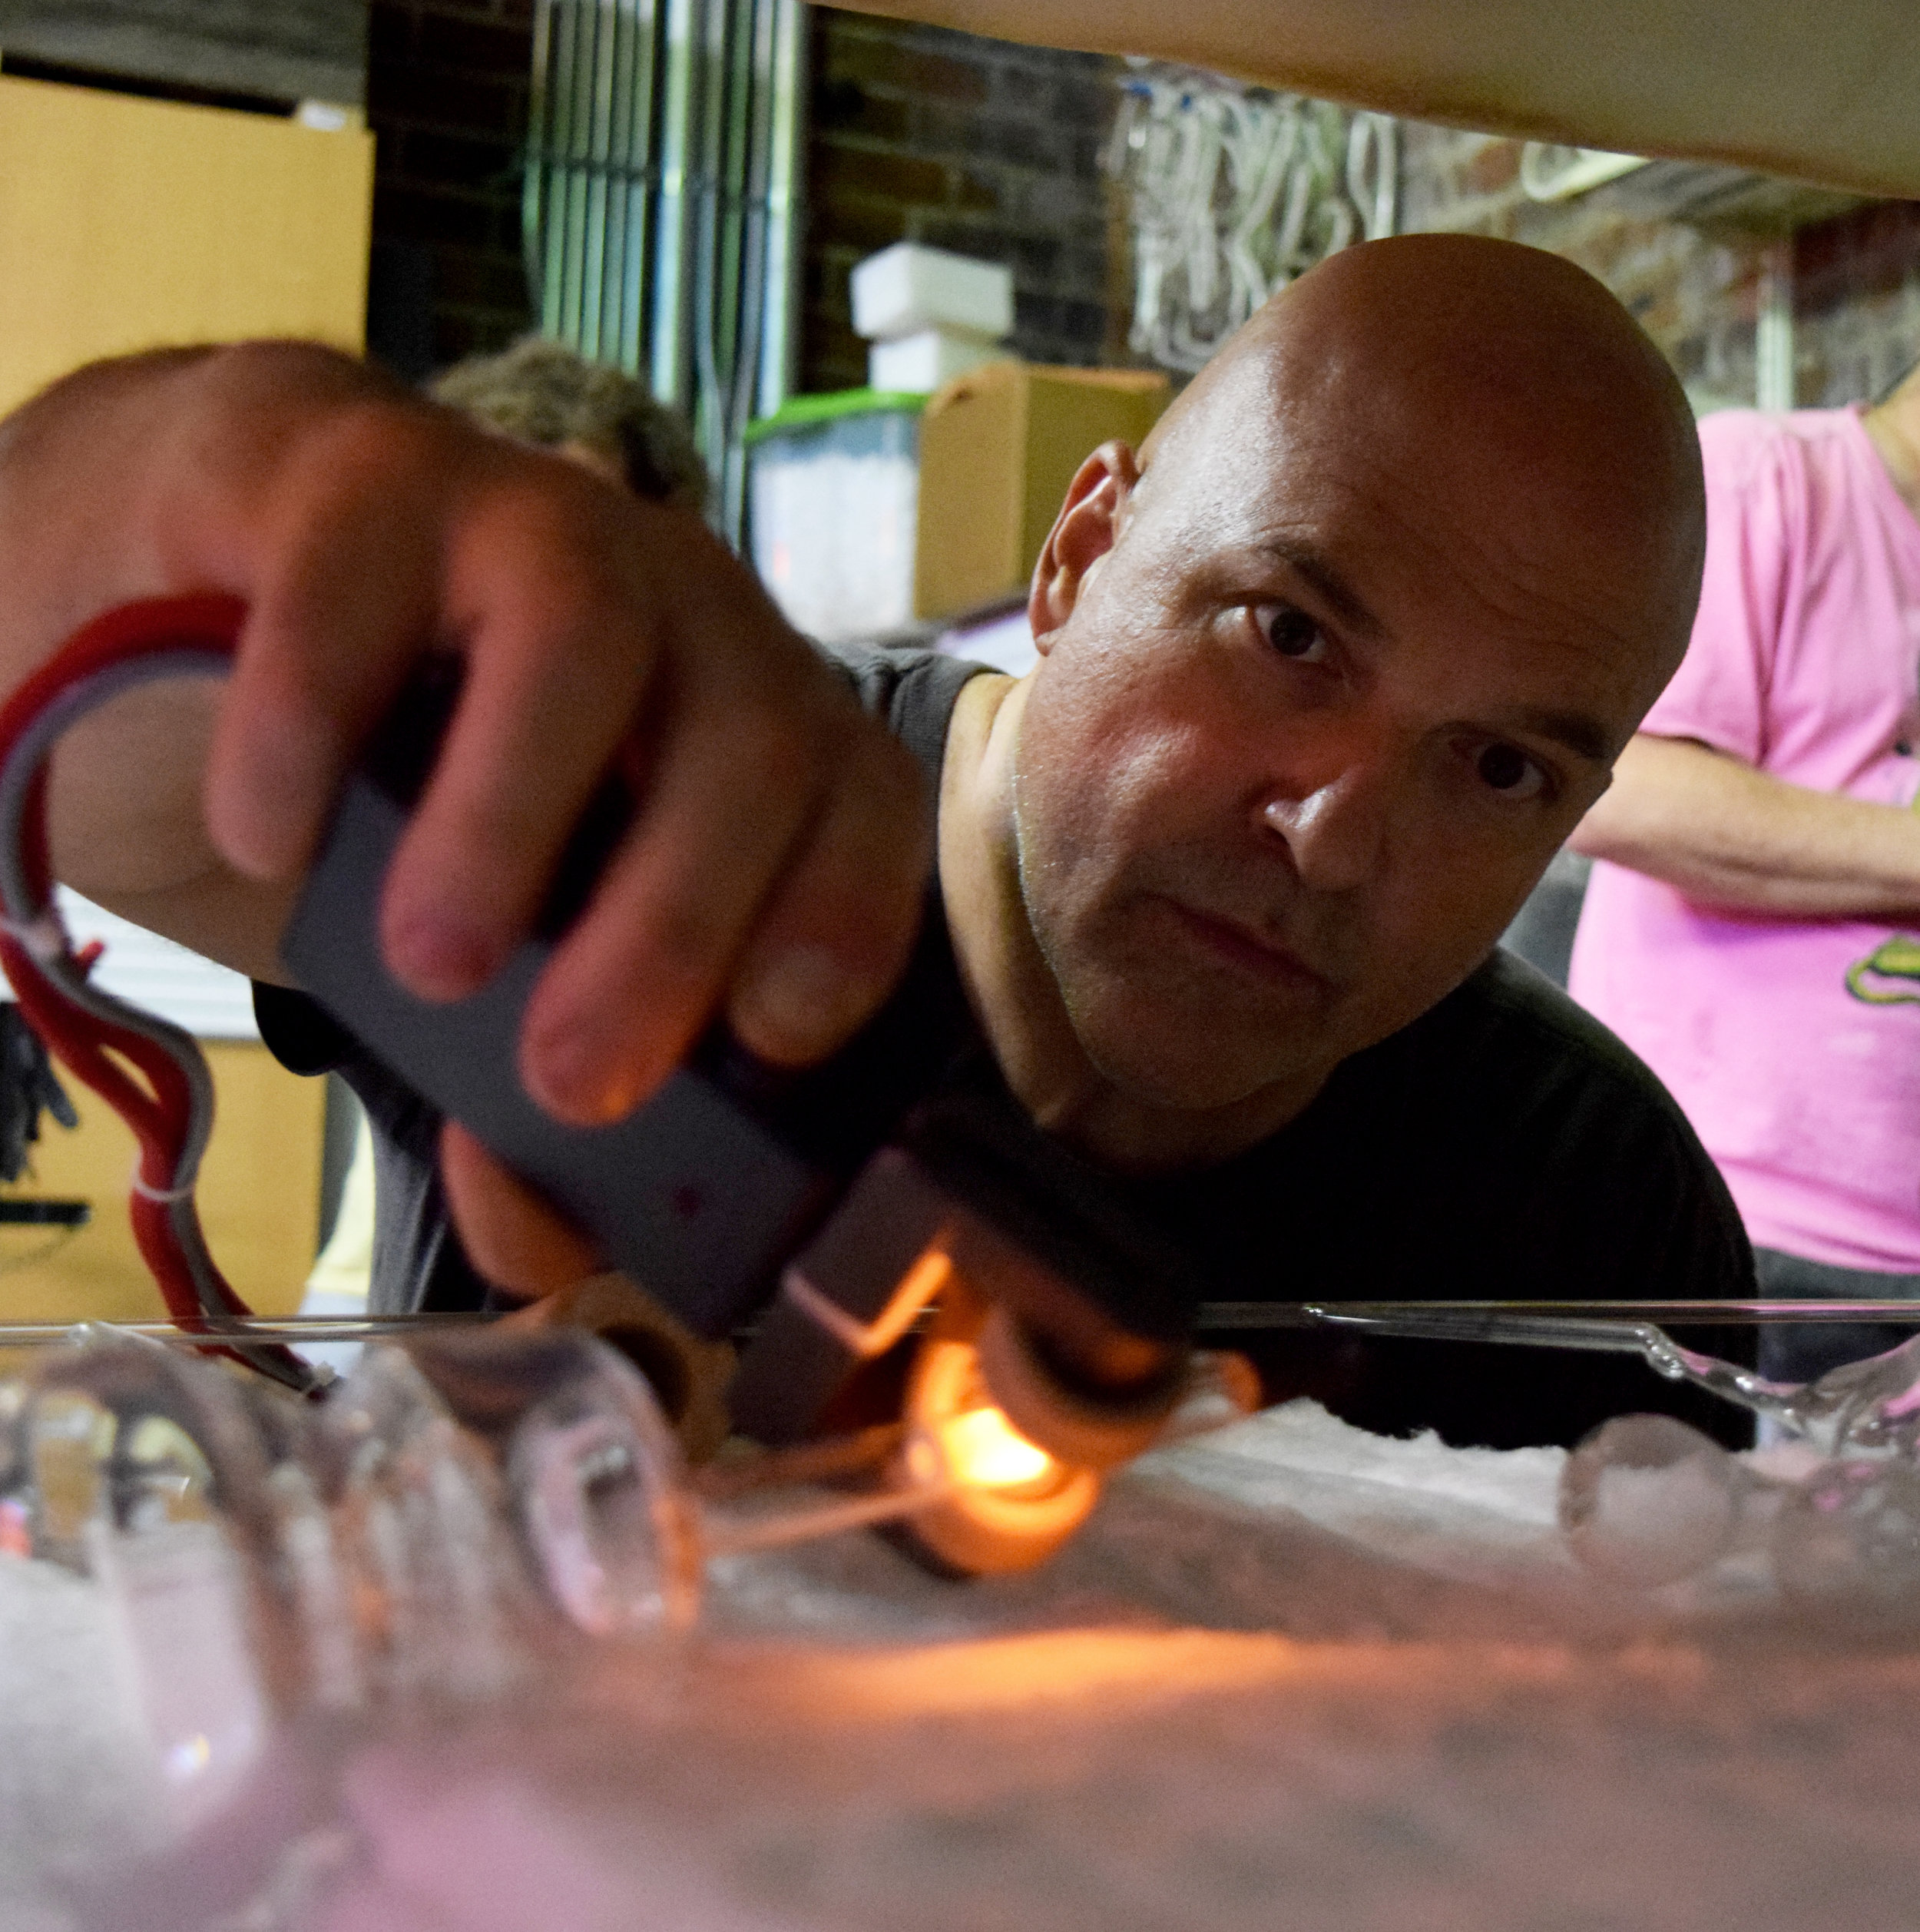 "Nate Sheaffer - Nate is the father of Glas. His 30+ years as a neon artist has made him dedicated to bolstering the appreciation, knowledge, and manufacturing of American Neon.After graduating from UNC-Chapel Hill in the late 80's, Sheaffer was inspired to begin specializing in installations featuring neon lighting. His distinctive style consists of adding colorful neon wording and designs to found objects, sculptures, and canvases.""…the goal is to draw awareness to ways we all can be more thoughtful in multi-purpose usefulness of the planet's natural resources"" – Nate Sheaffer"